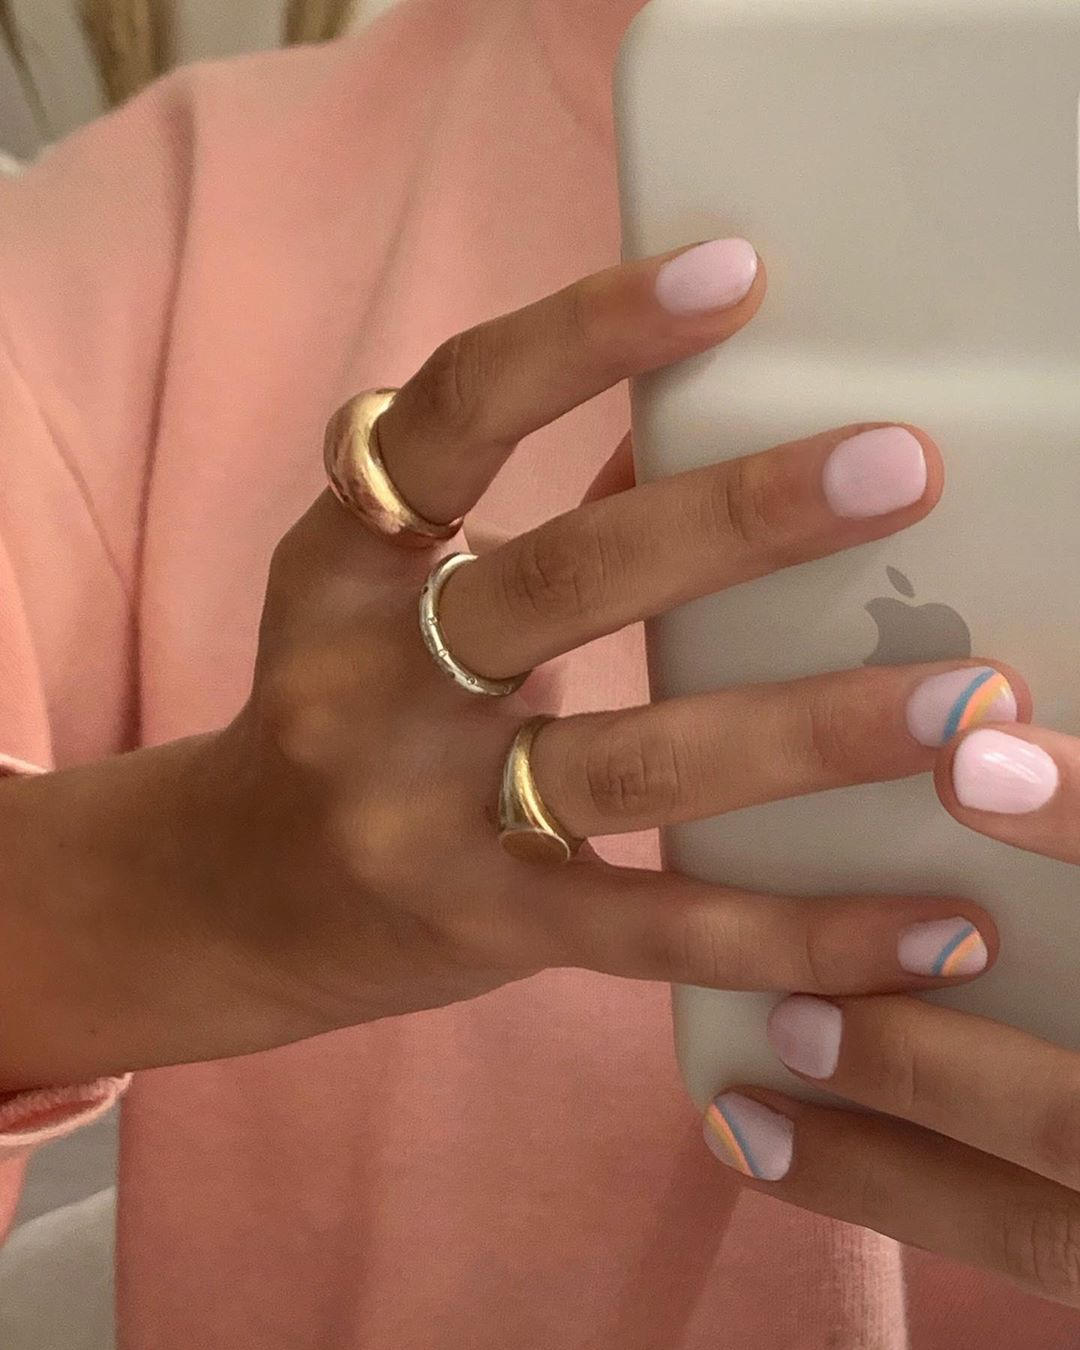 31 New Beauty Launches You Need To Check Out ASAP -   beauty Nails art